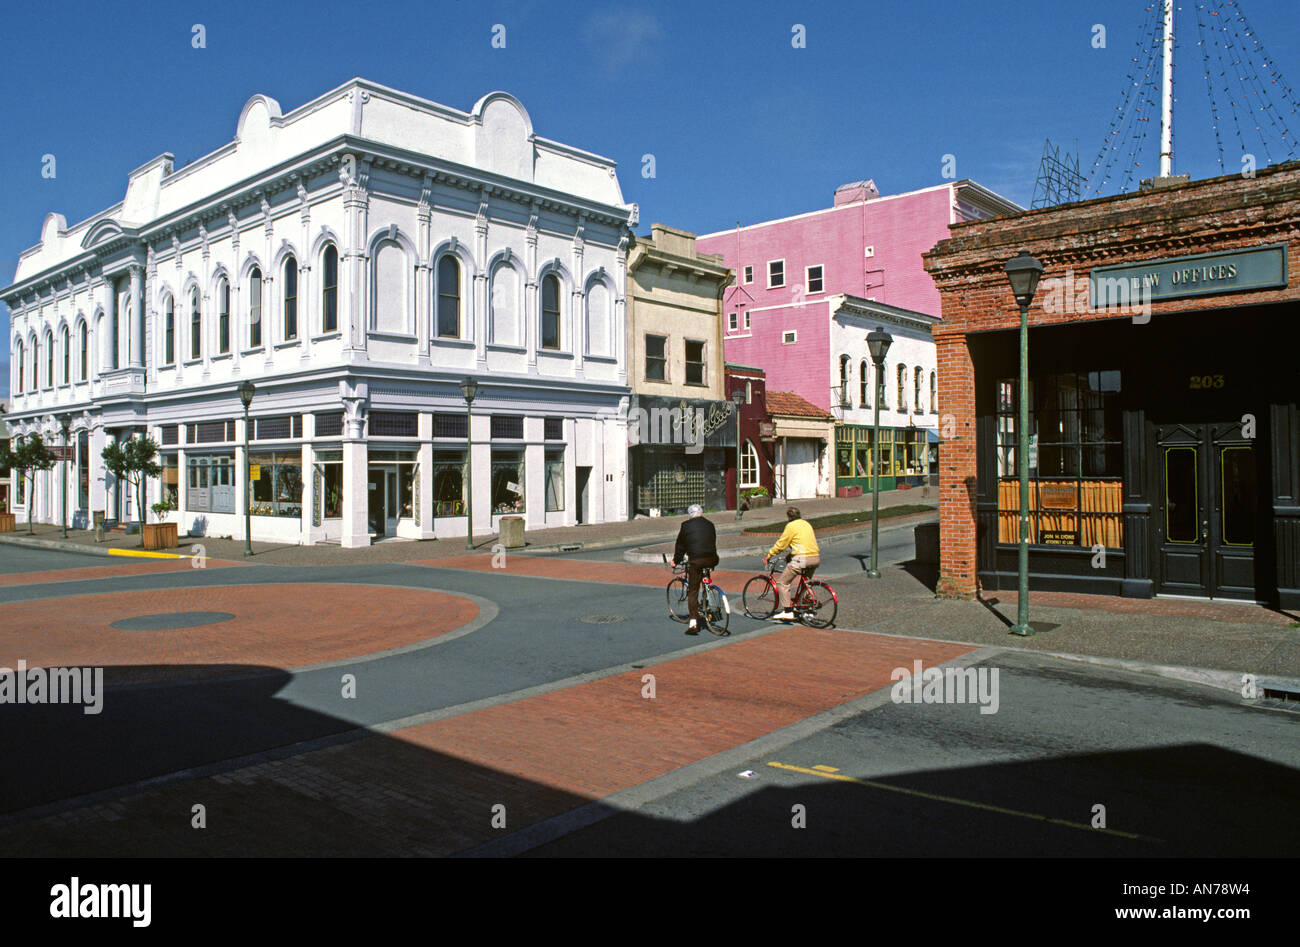 Historical OLD TOWN EUREKA has been renovated is now attractive shops offices EUREKA CALIFORNIA - Stock Image